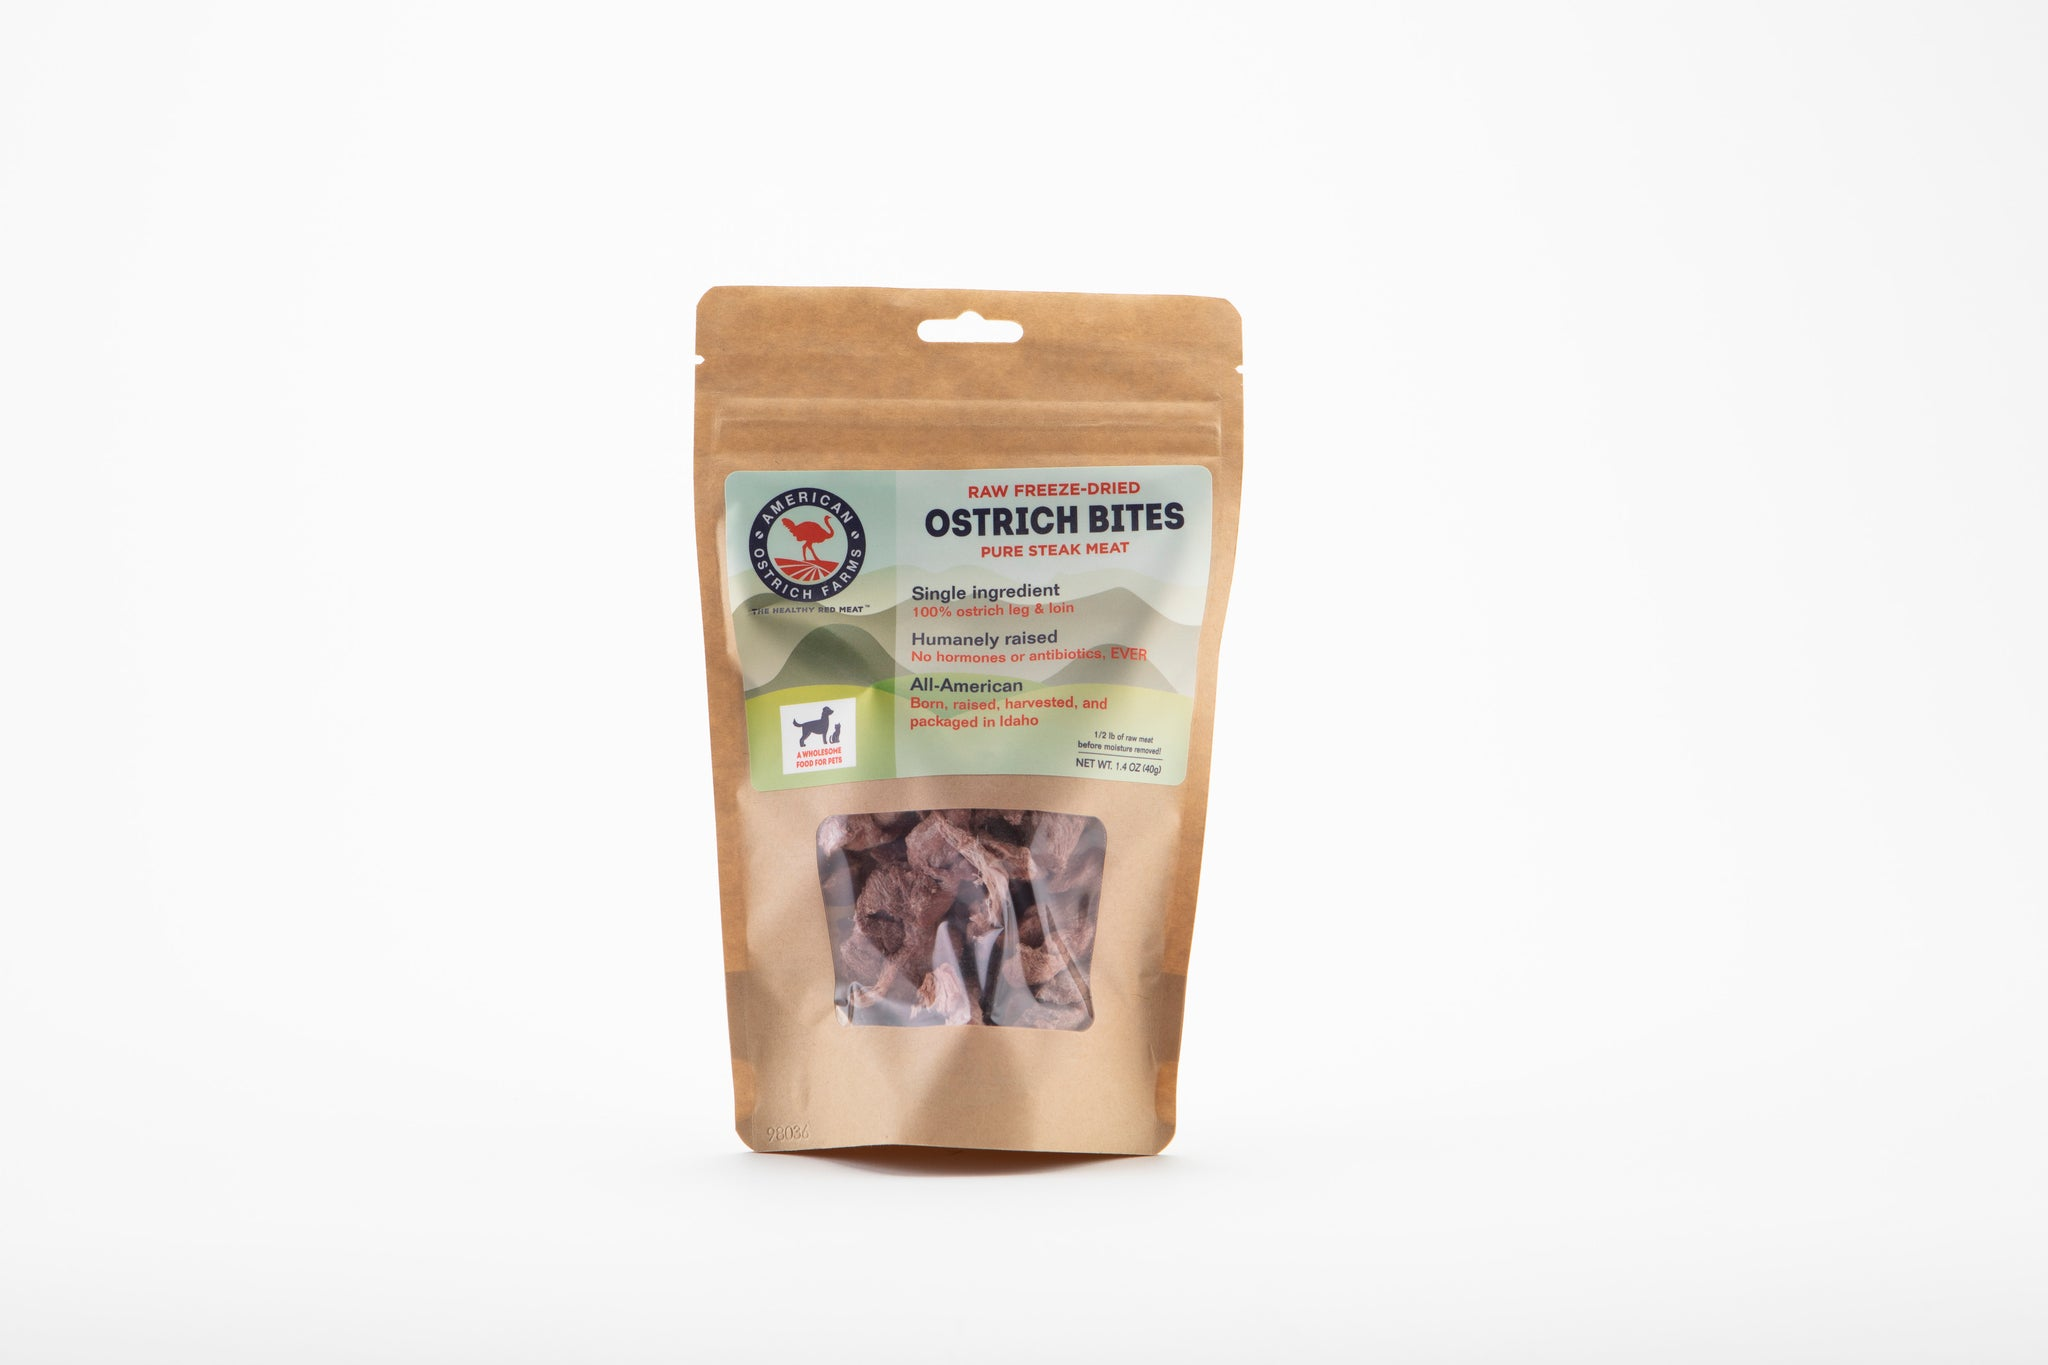 Raw Freeze-dried Steak Bites